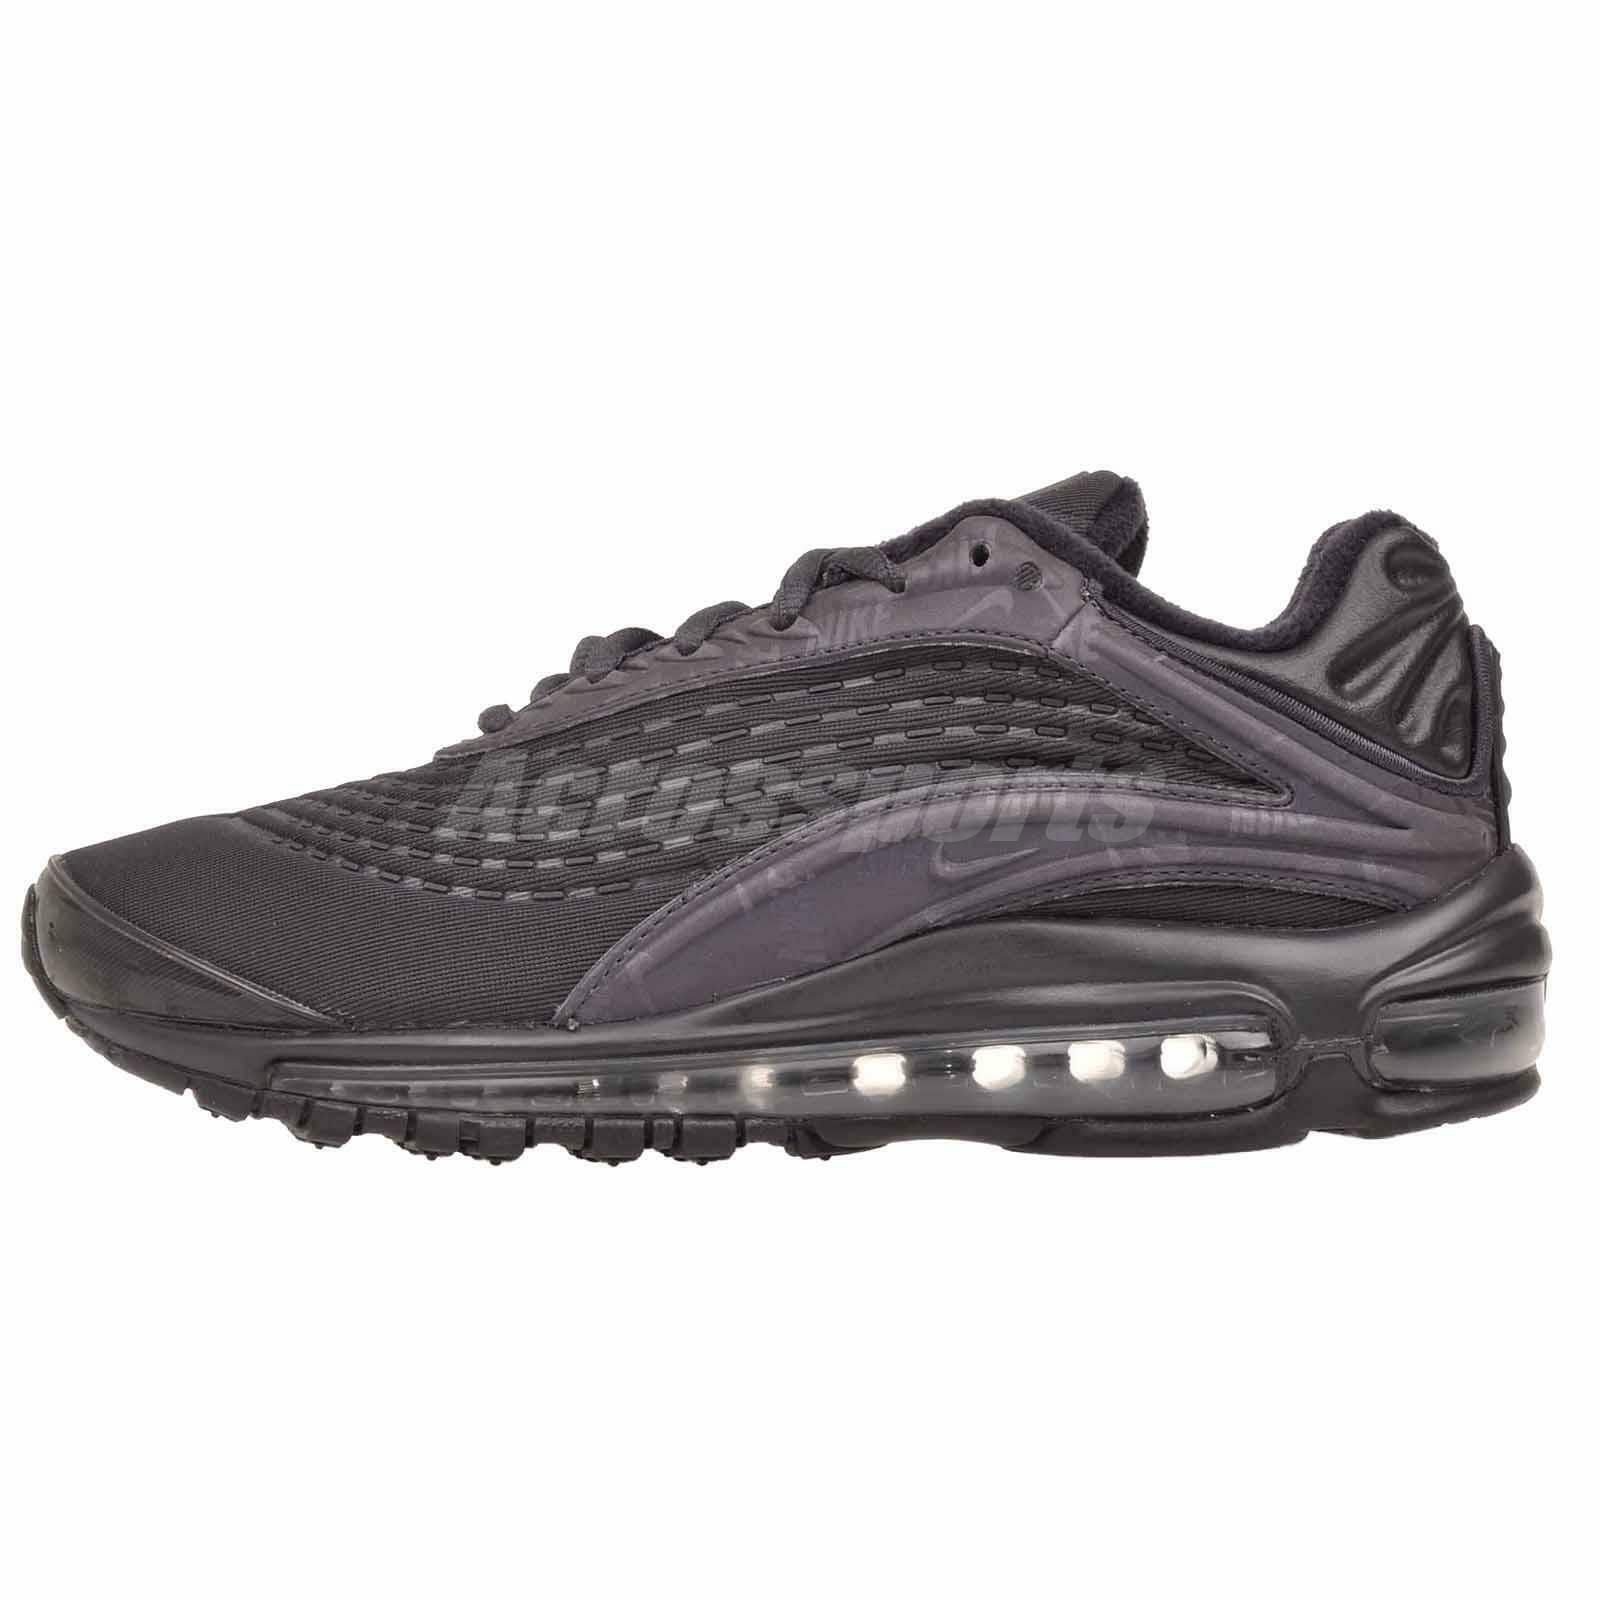 W Nike Air Max Deluxe se Running Zapatos para mujer gris de aceite AT8692-001